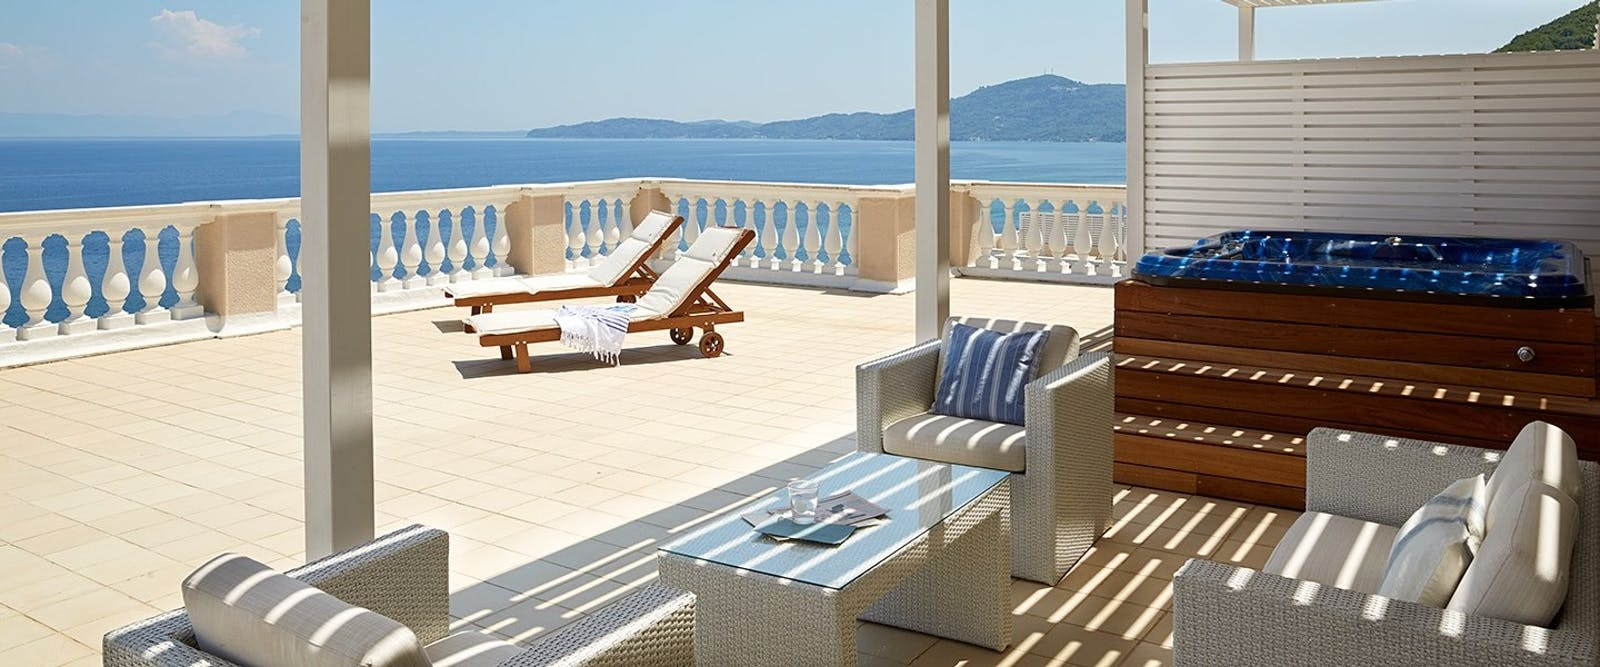 Presidential Suite Terrace at Marbella Corfu, Cyprus